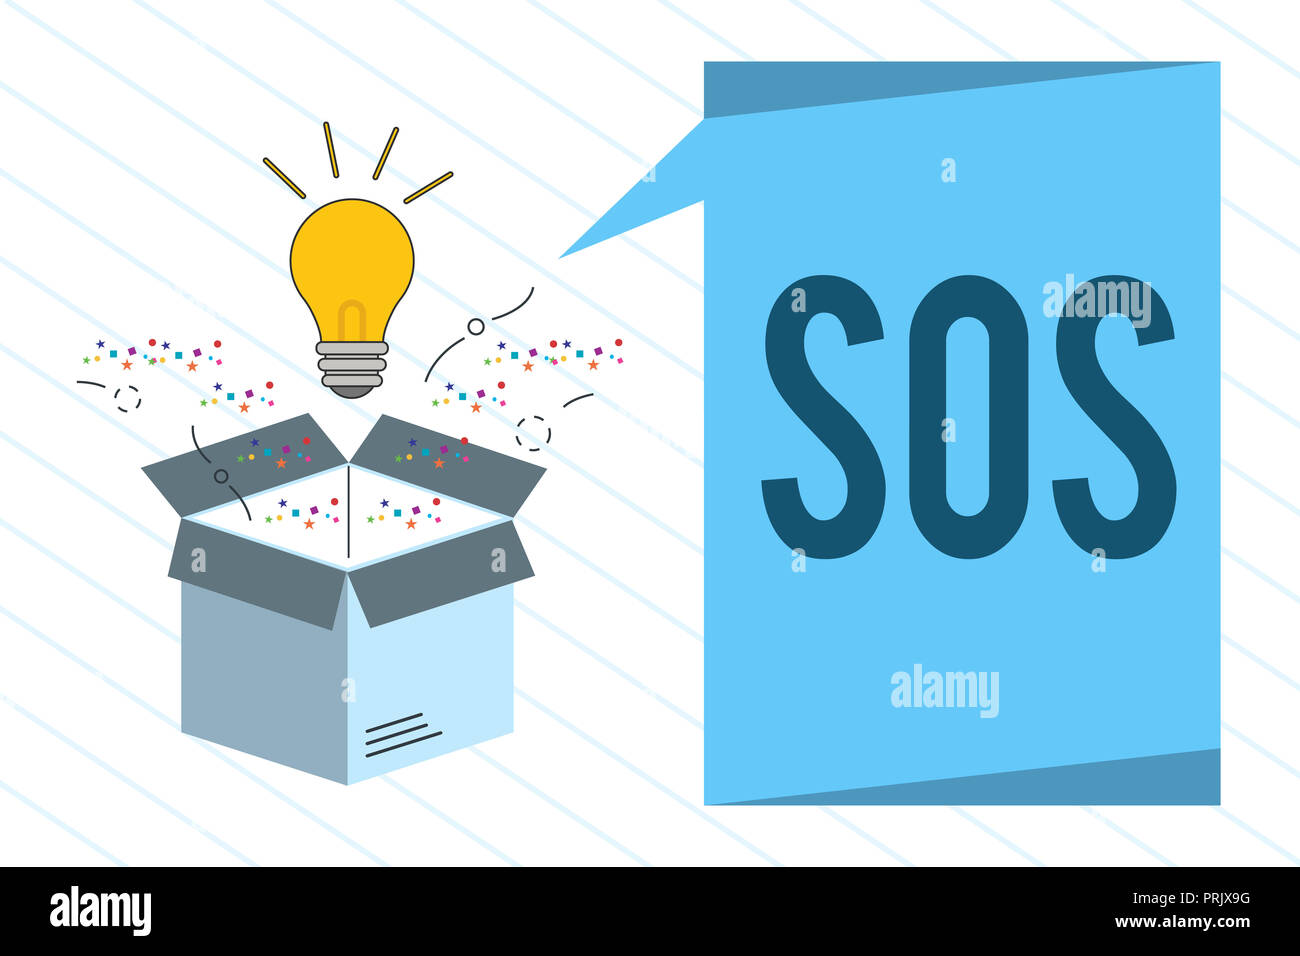 Word writing text Sos. Business concept for Urgent appeal for help International code signal of extreme distress. - Stock Image